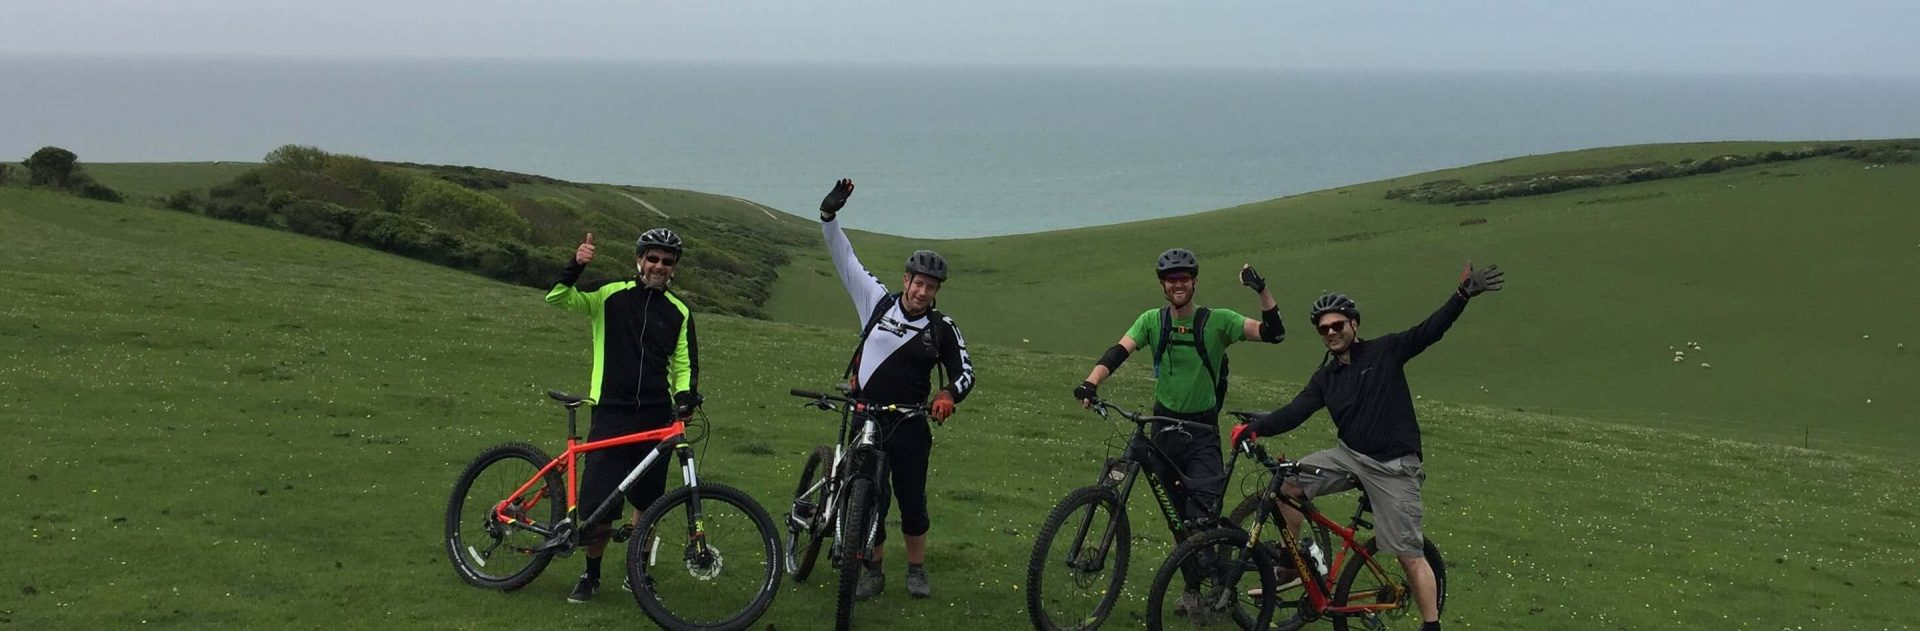 Guided Ride South Downs MTB Day out Birling gap mountain biking